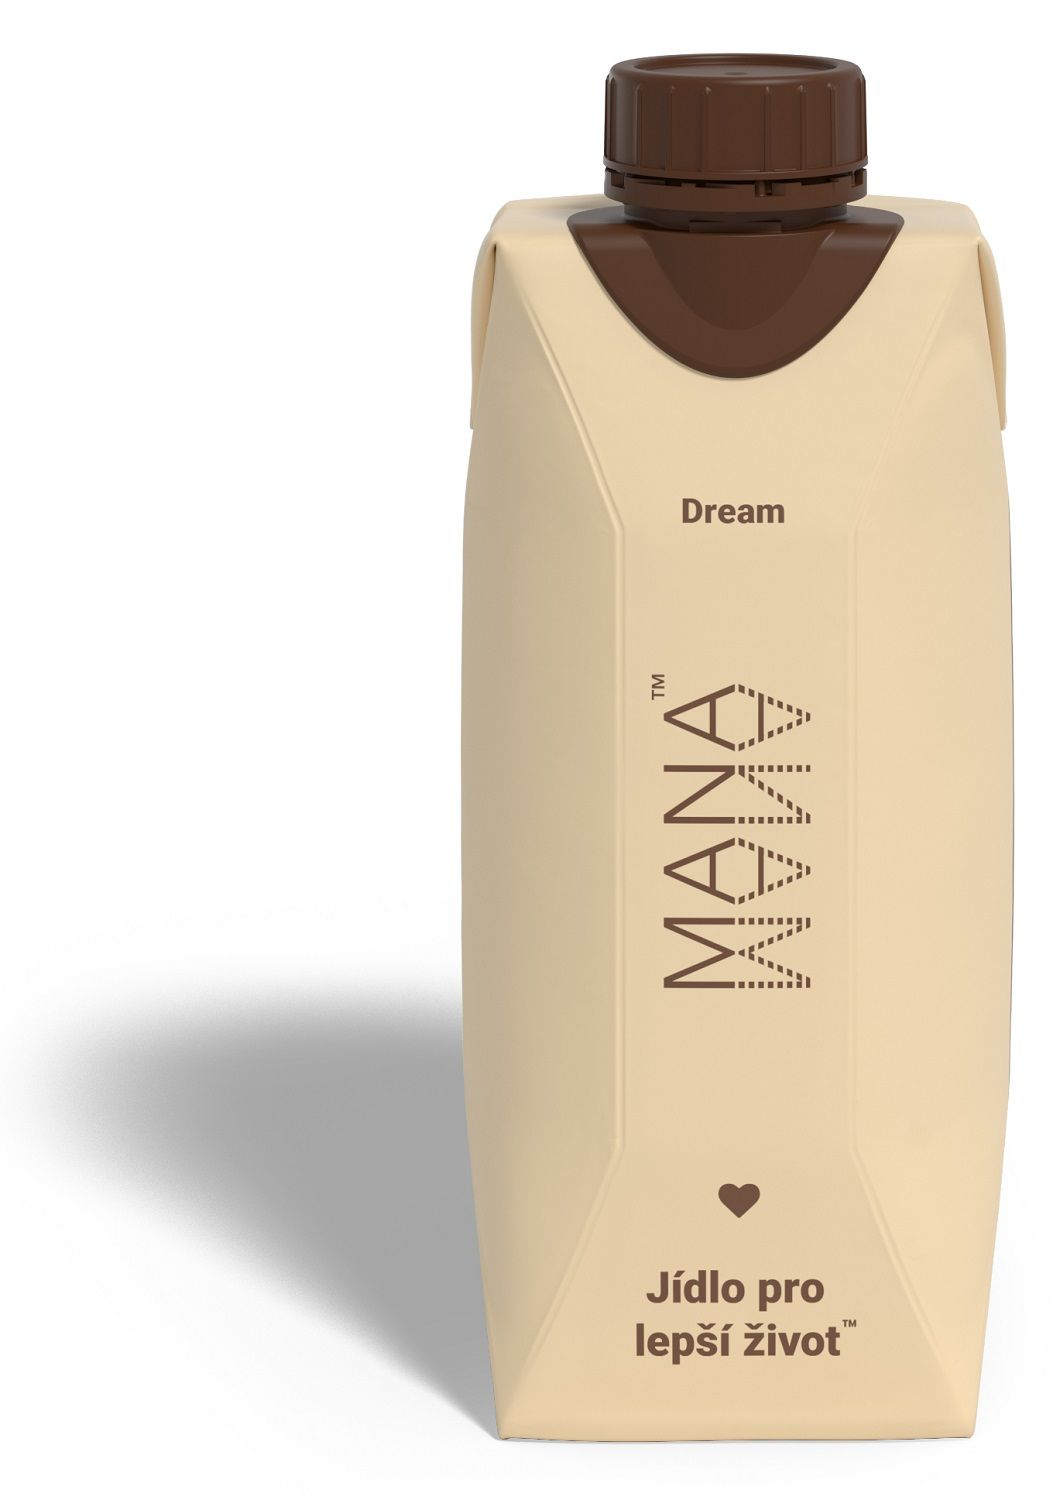 Mana drink Dream 330ml Heaven Labs